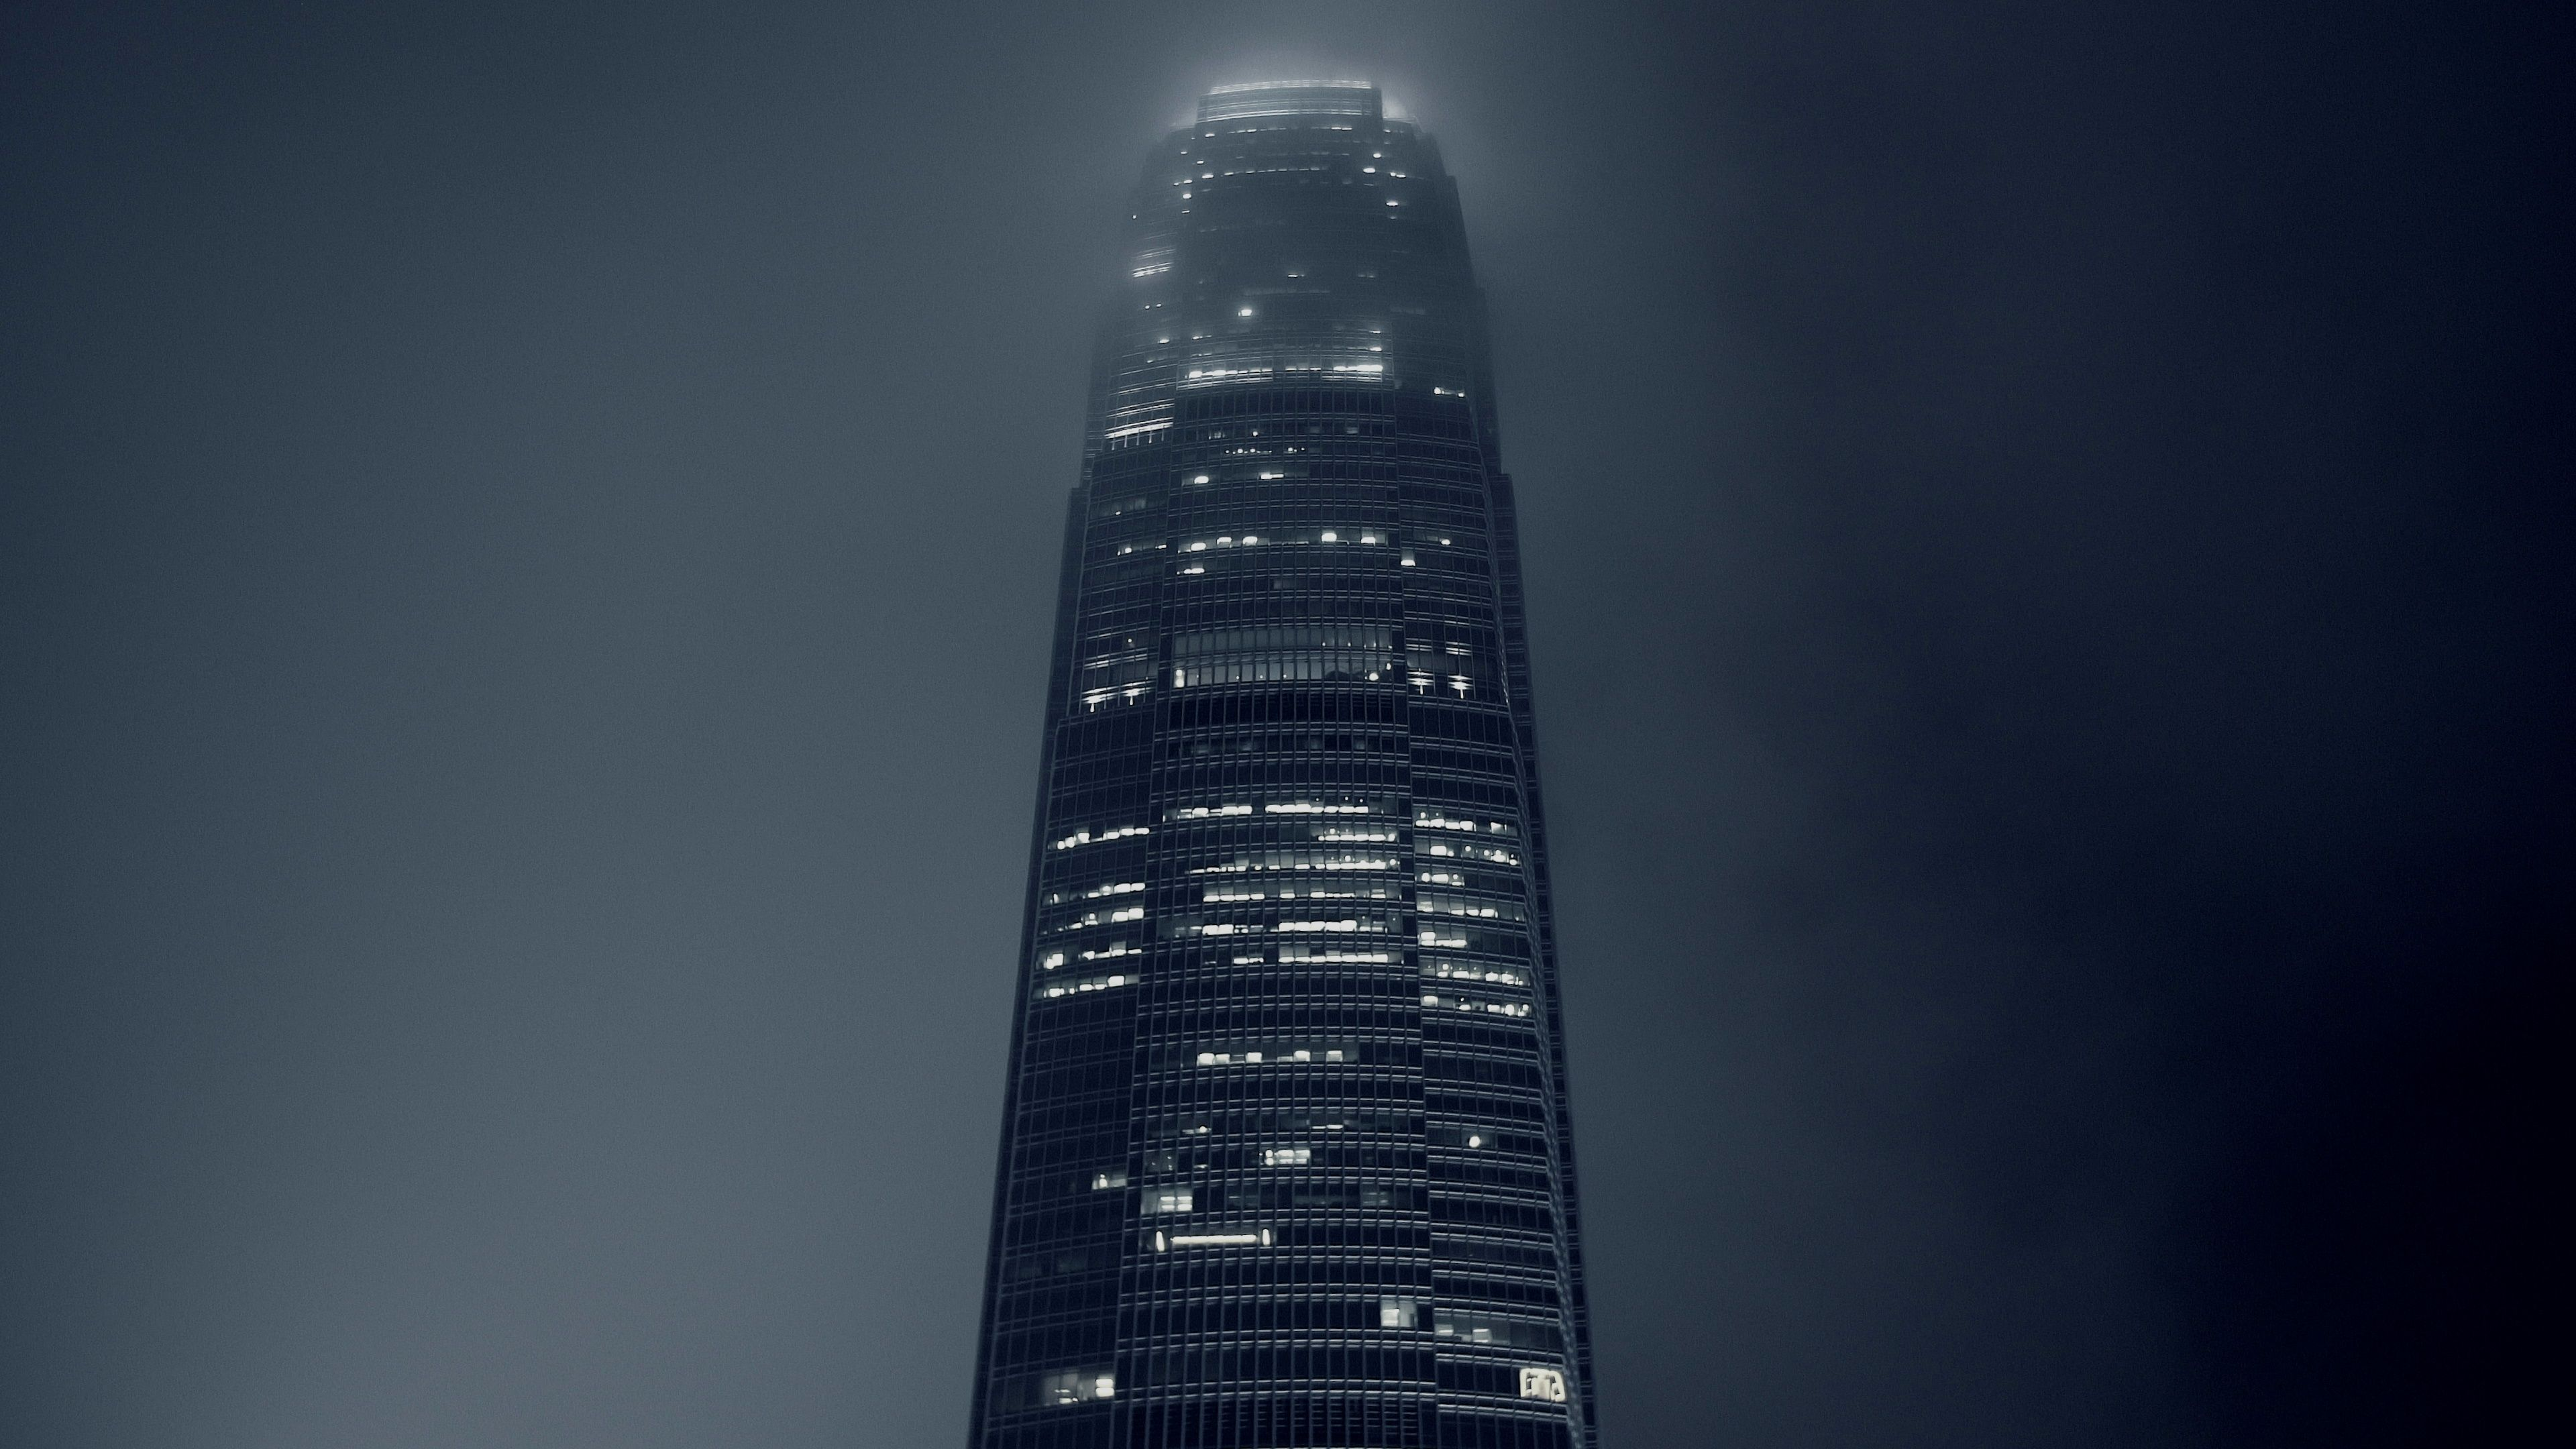 Time Lapse Of Clouds Passing Over Corporate Skyscraper At Night In Hong Kong Stock Footage Passing Corporate Clouds Time Skyscraper Clouds Night